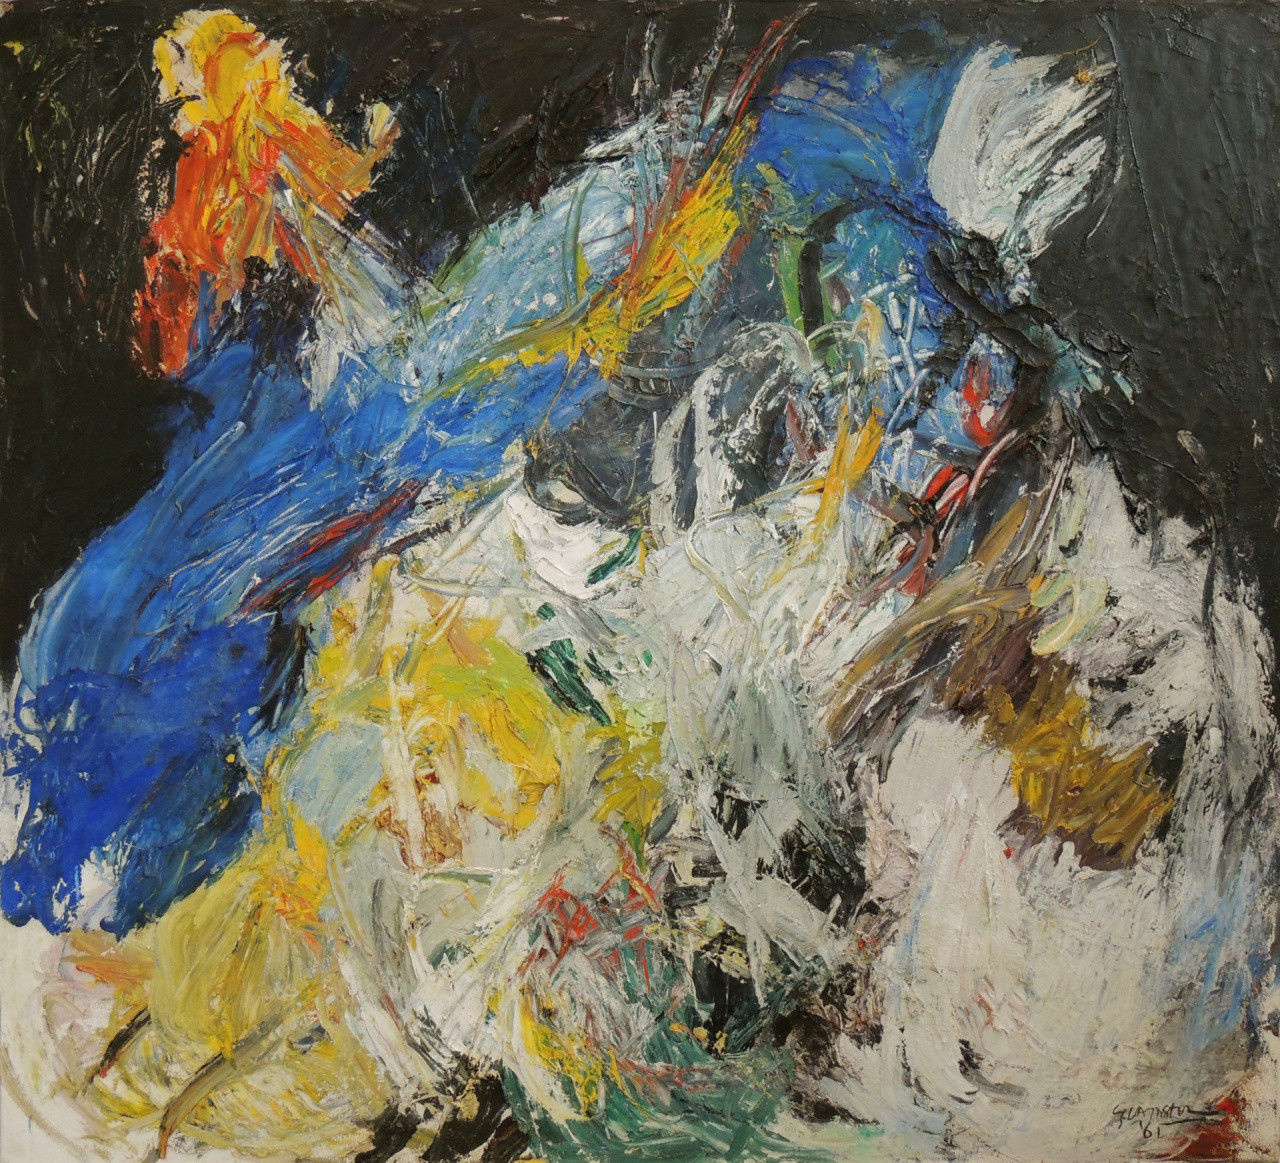 Abstract oil painting, La Nuit, Ger Lataster, 1961.